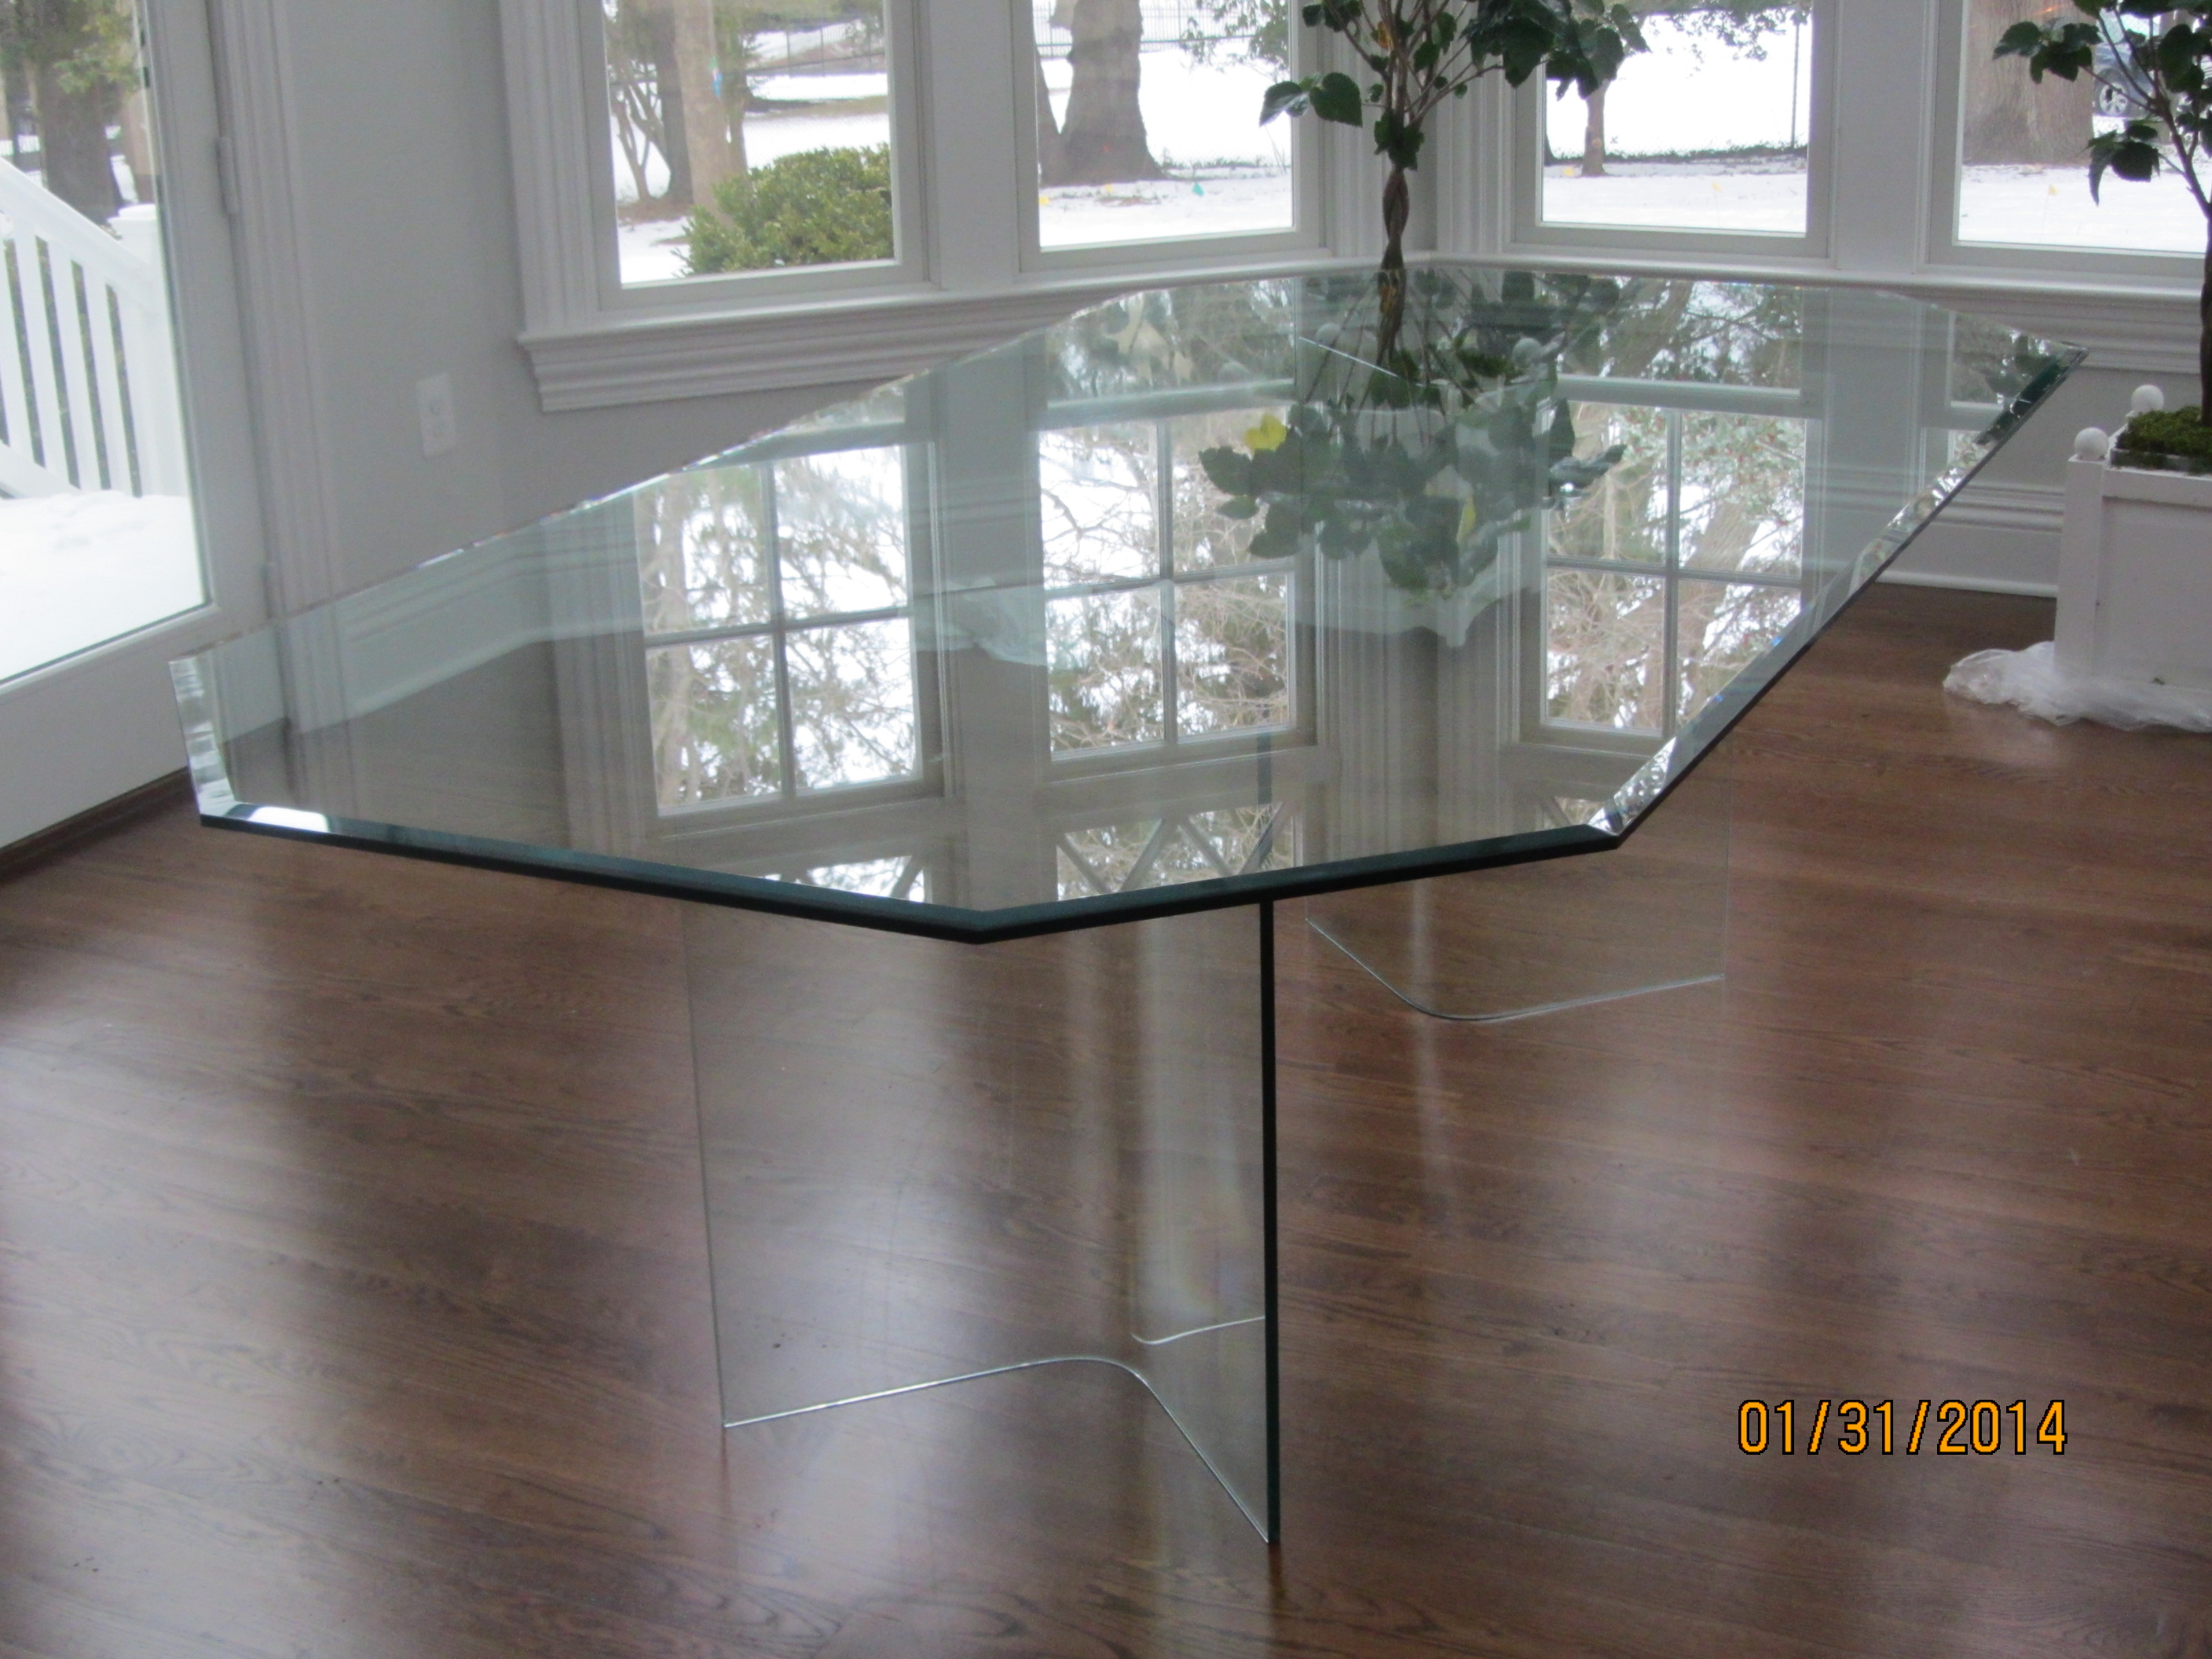 all_glass_table1.JPG